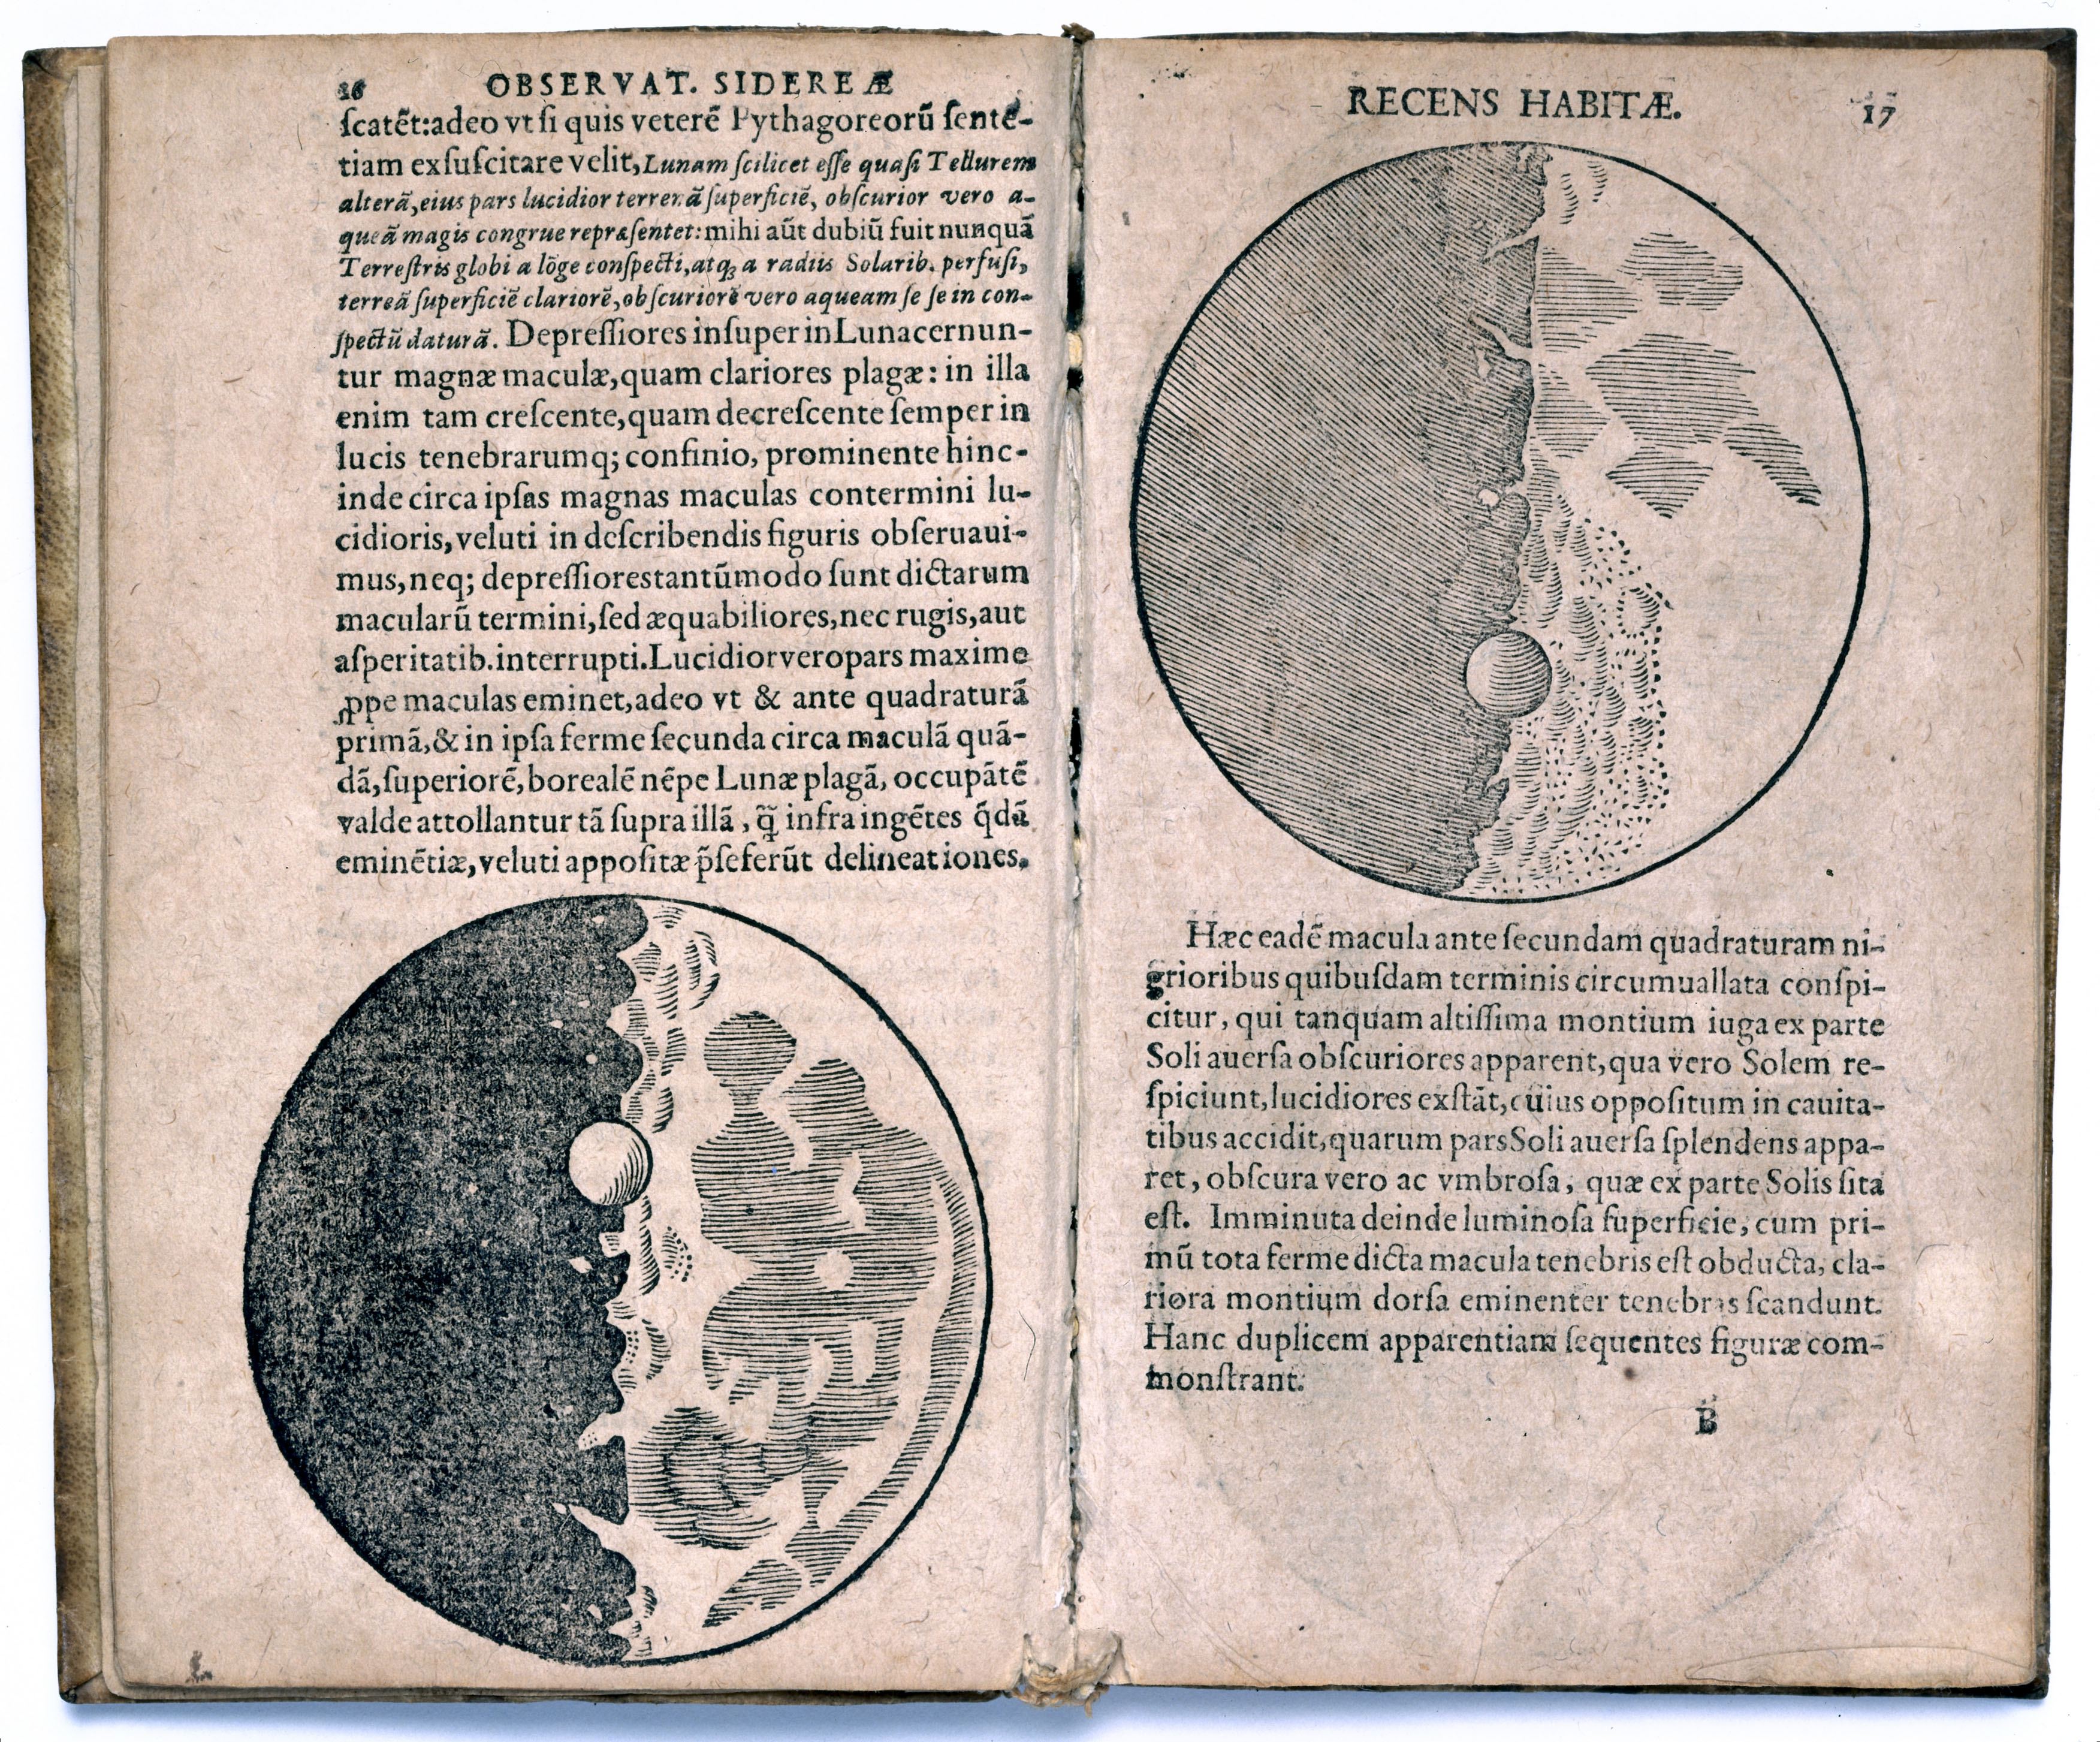 Pages from 'Sidereus, nuncius magna' (known as 'The Starry Messenger', Venice, 1610) by Galileo Galilei (1564-1642), a book of astronomical theory and observations. Galileo was an Italian astronomer and physicist and outstanding representative of the movement which transformed medieval natural philosophy into modern science.